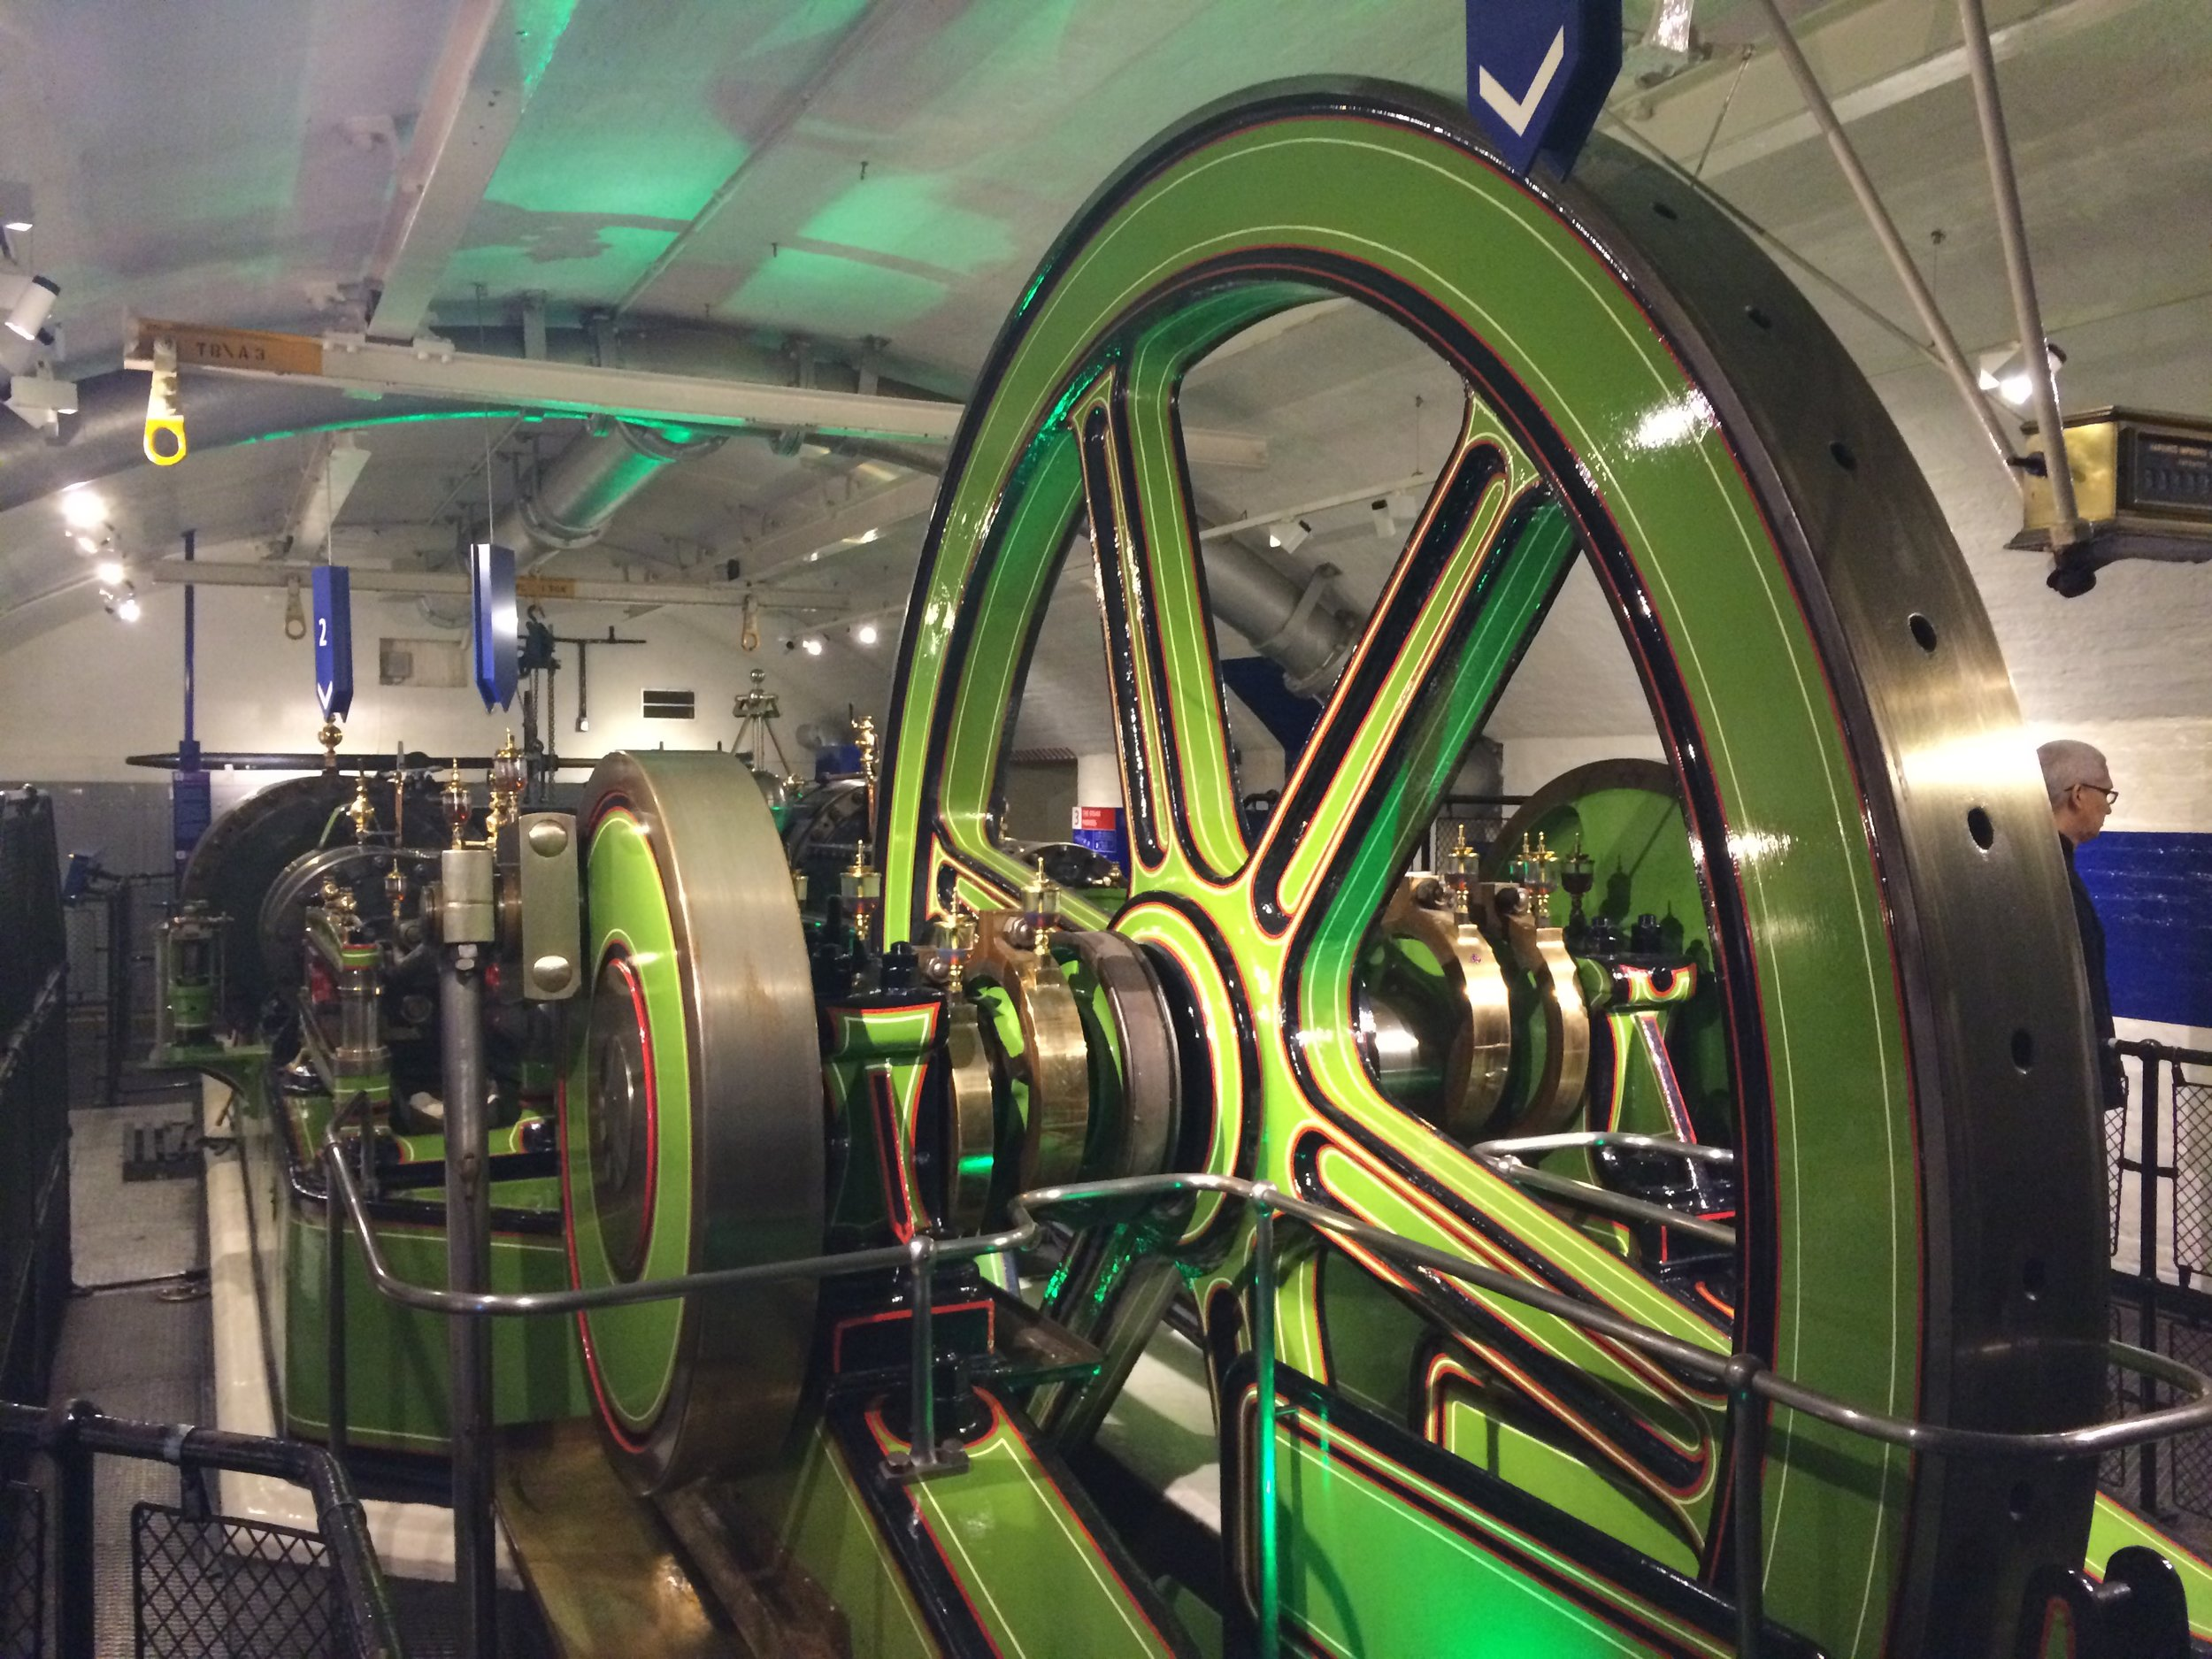 The Tower Bridge Experience also houses the original bascule system of the bridge.